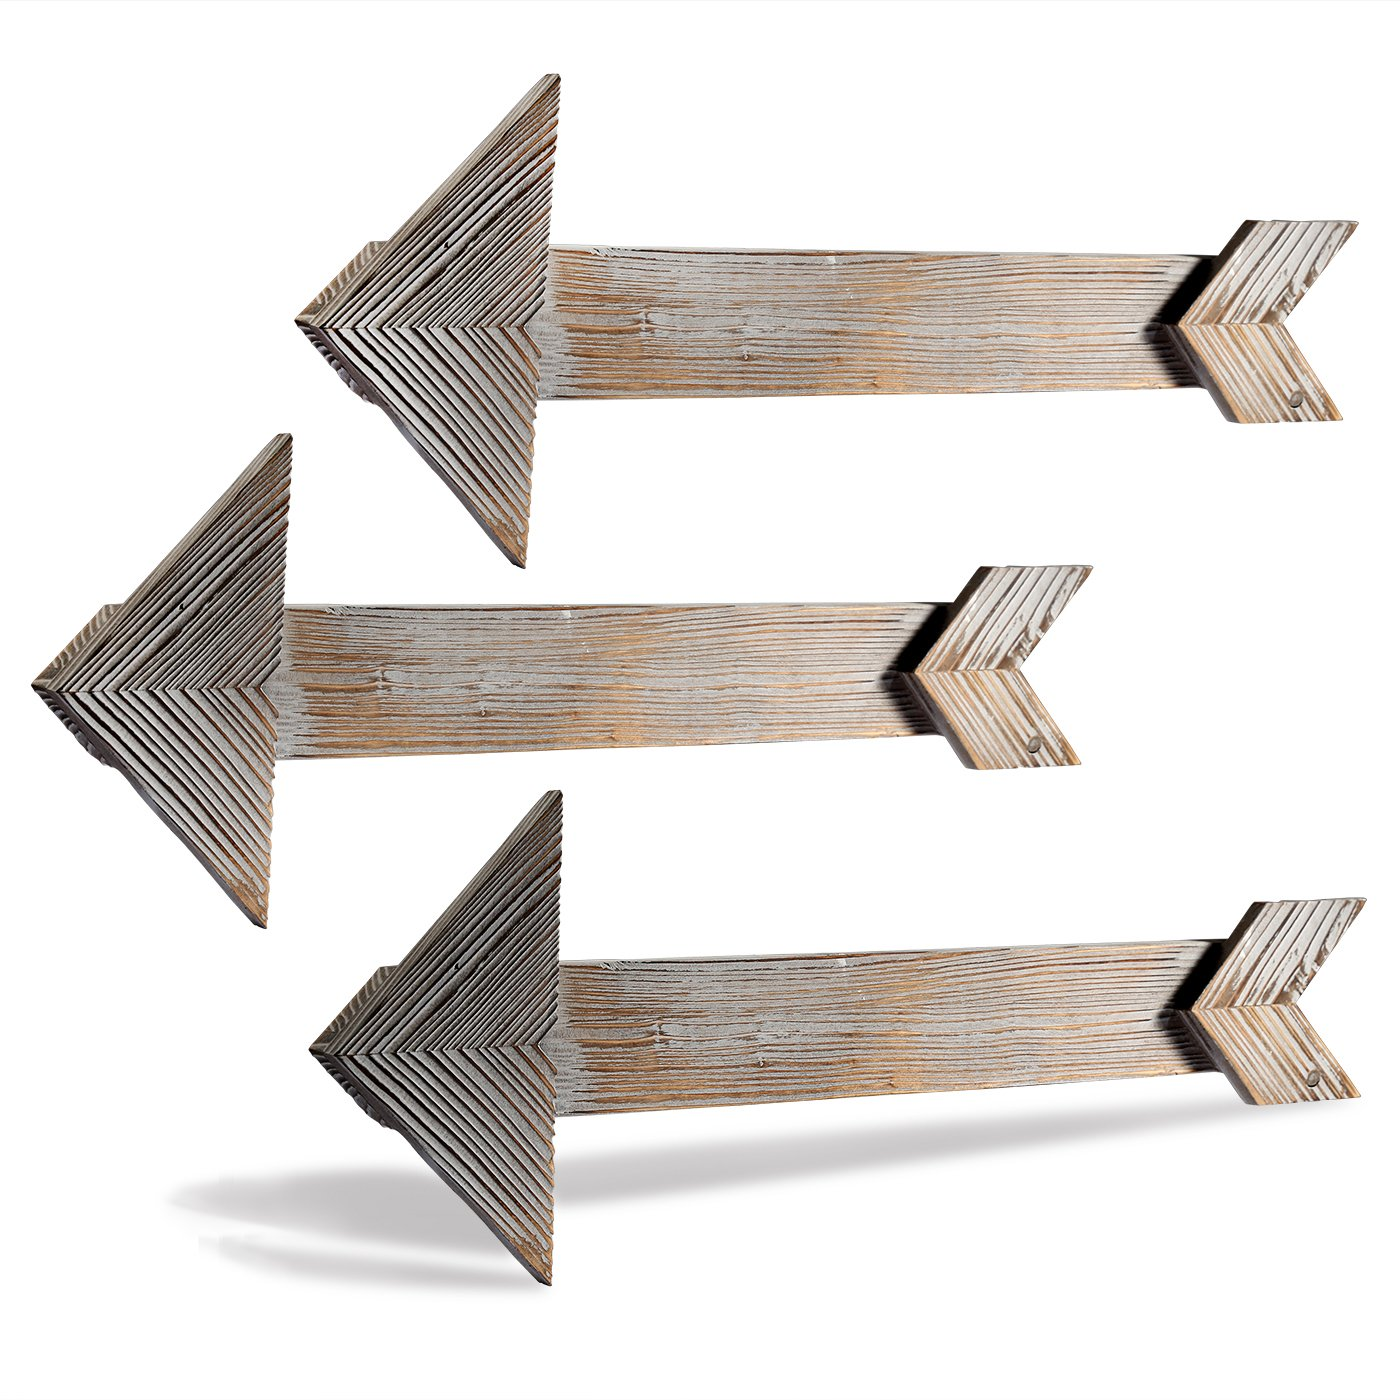 Cade Rustic Wall Decor Arrow Barnwood Decorative Arrows Barn Wood Decorative Signs-Decoration for Home or Outdoor (3, 5.9*17.5 inches) cade-one DS0041